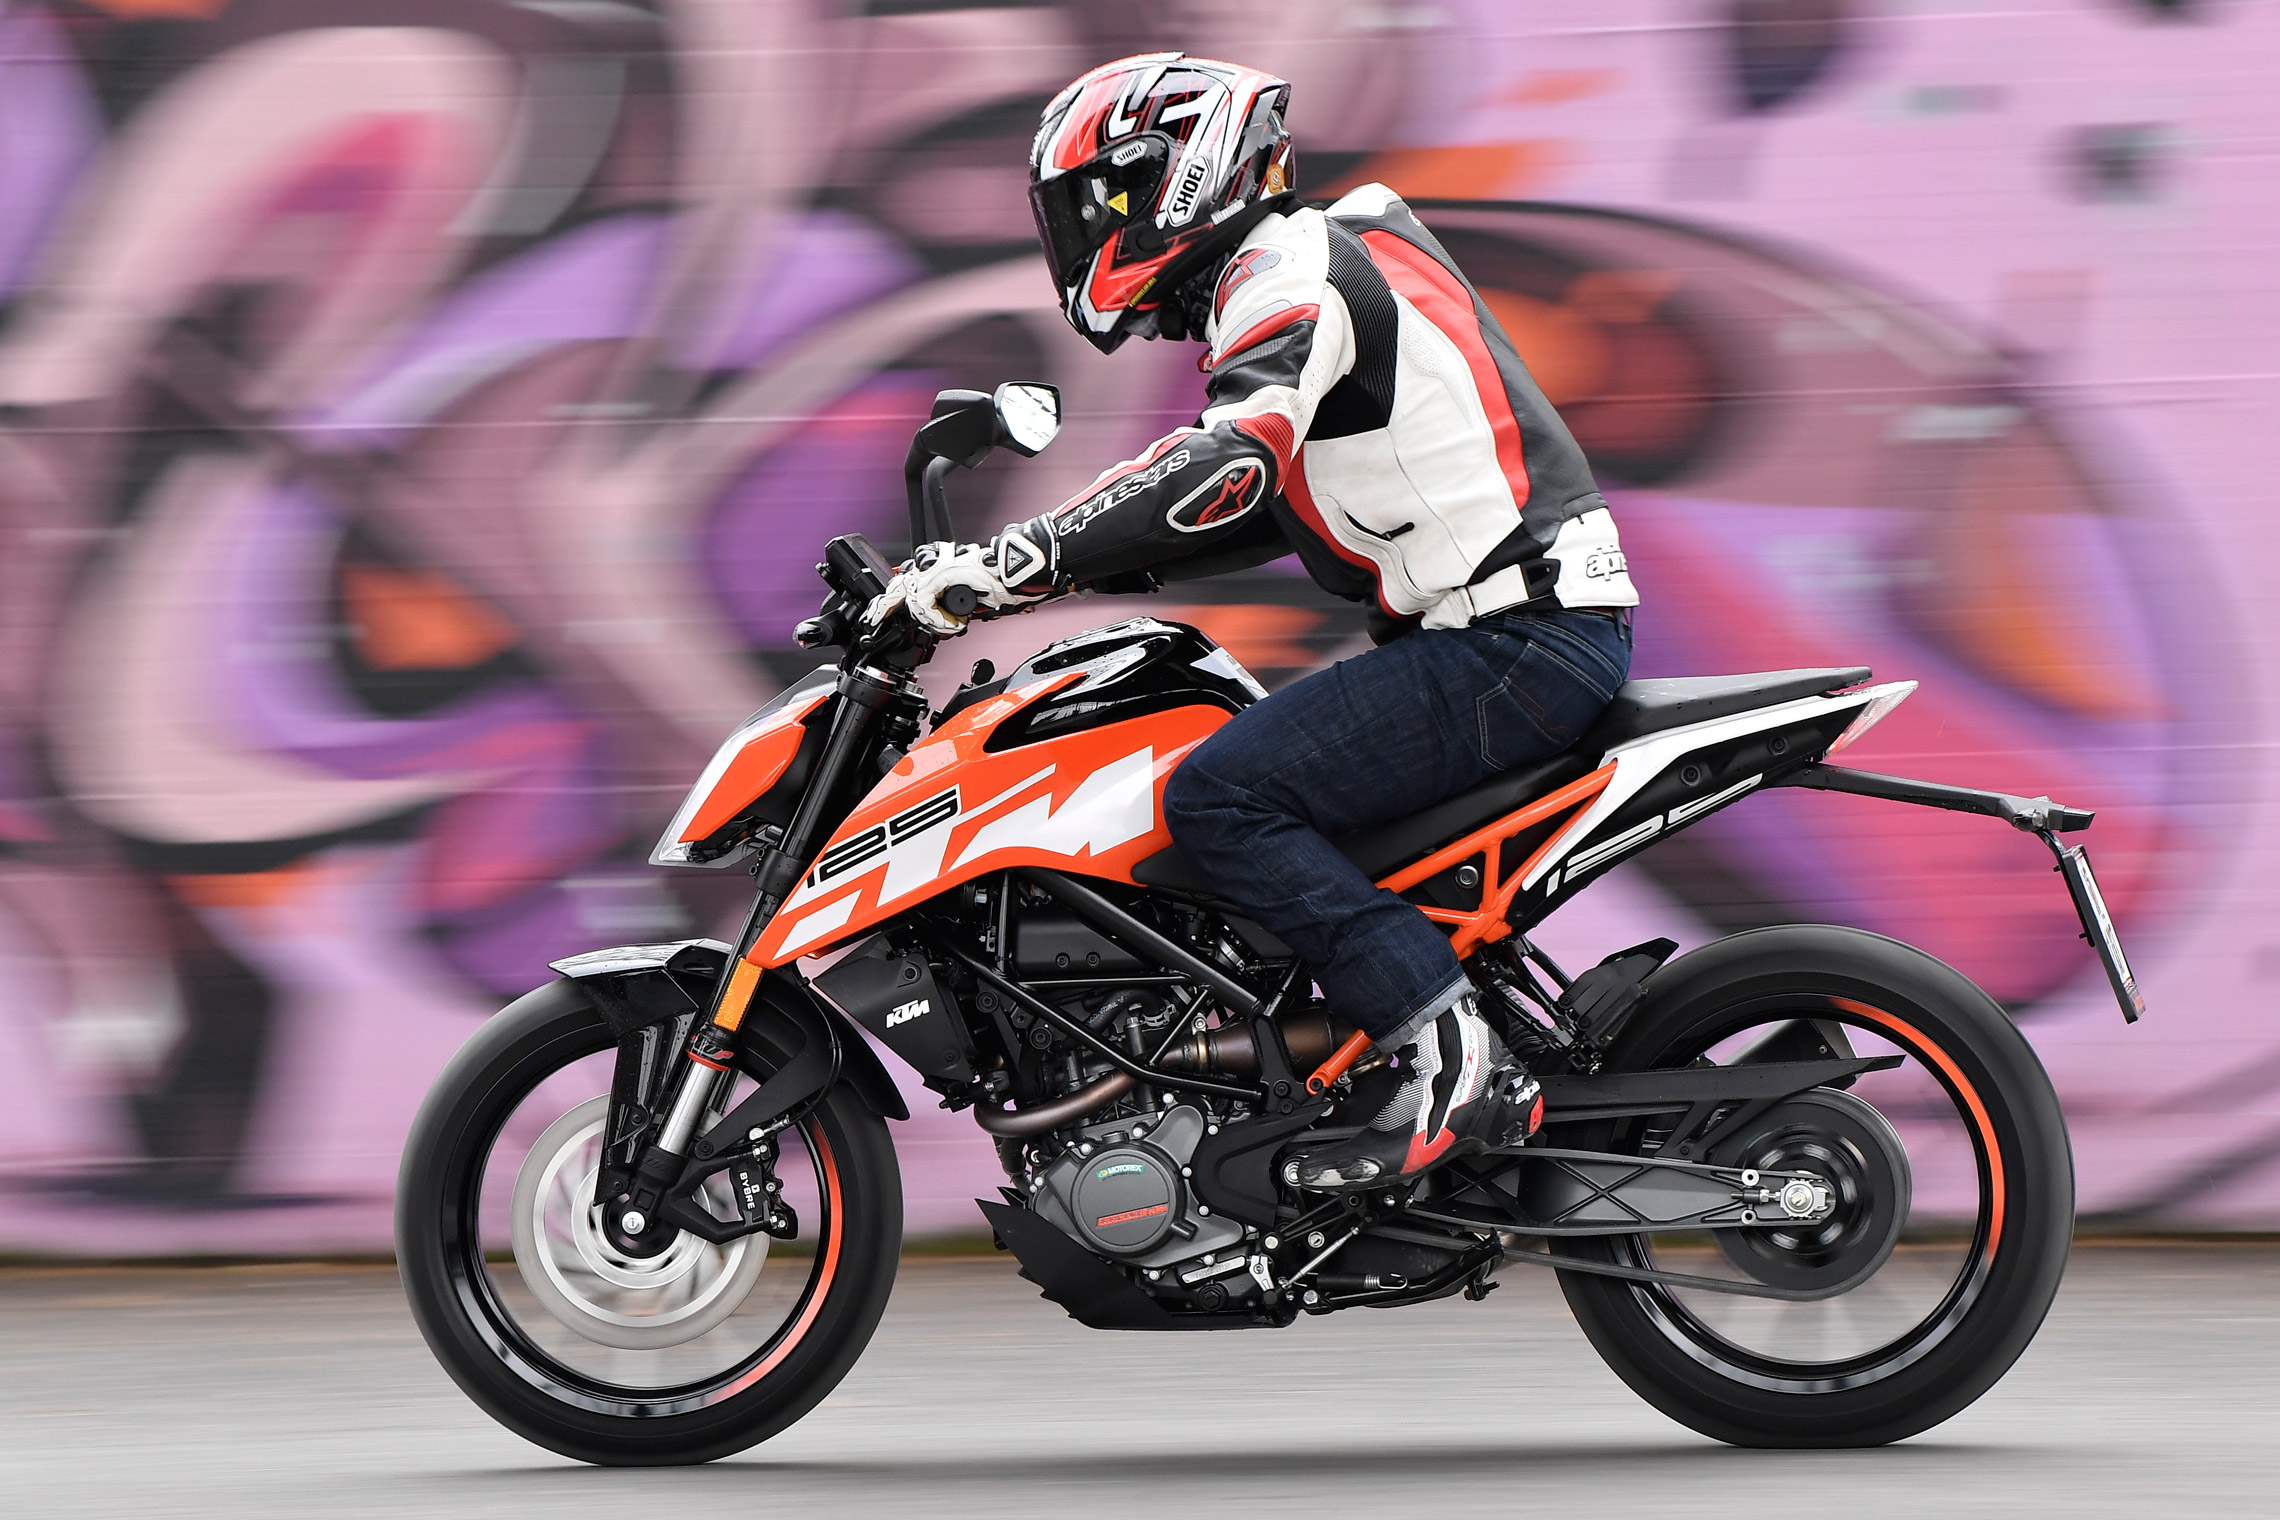 ktm duke 390 review ktm duke 125 review visordown. Black Bedroom Furniture Sets. Home Design Ideas